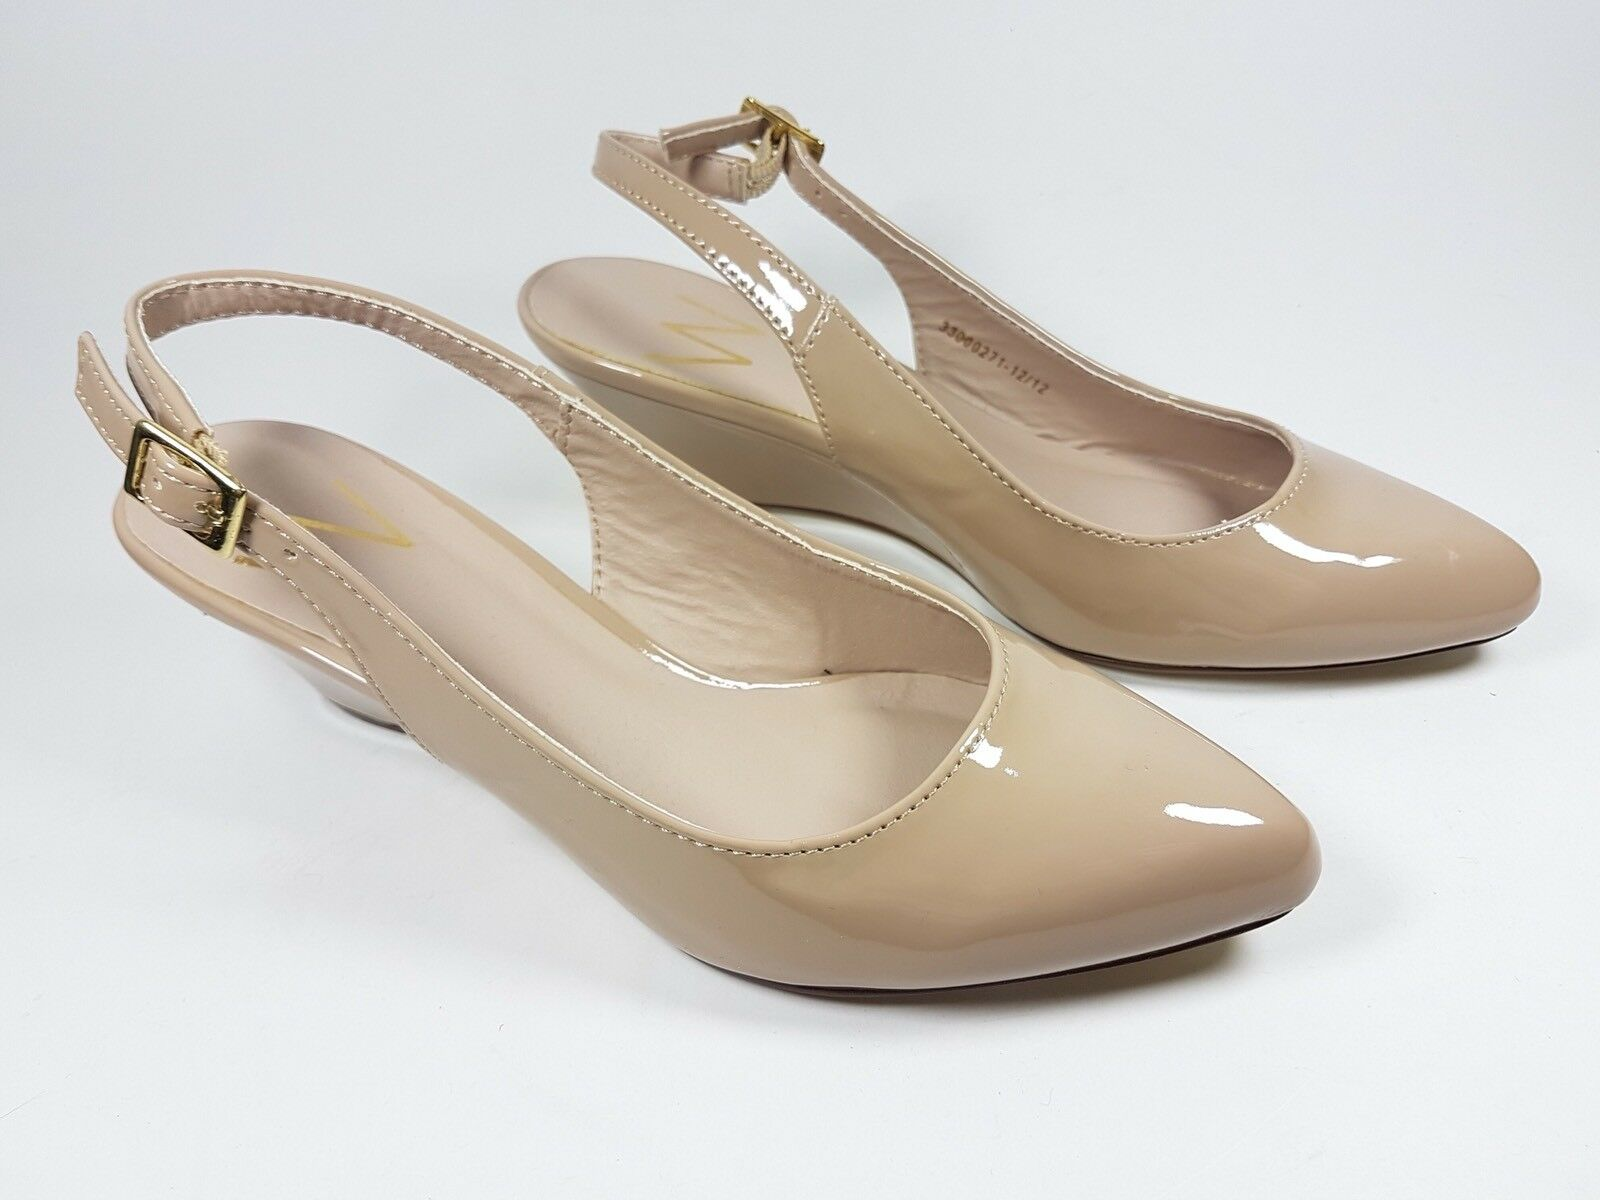 W cream faux slingback patent leather low wedge slingback faux shoes eu 37 New d4ed18